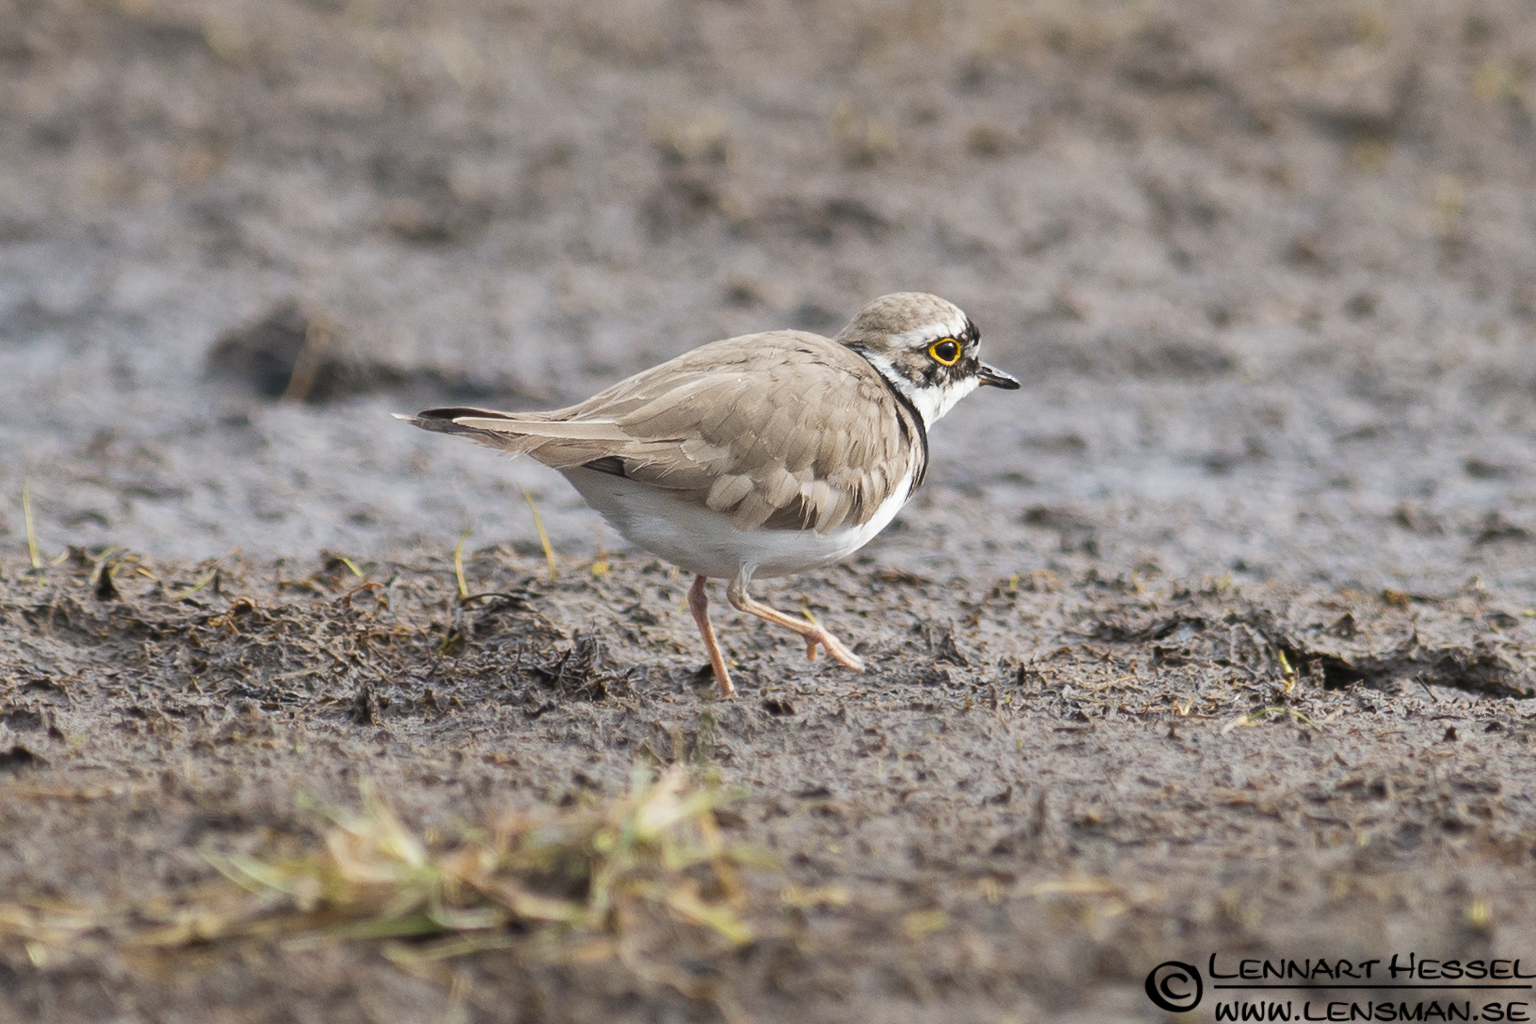 Little Ringed Plover at Stora Amundön practice